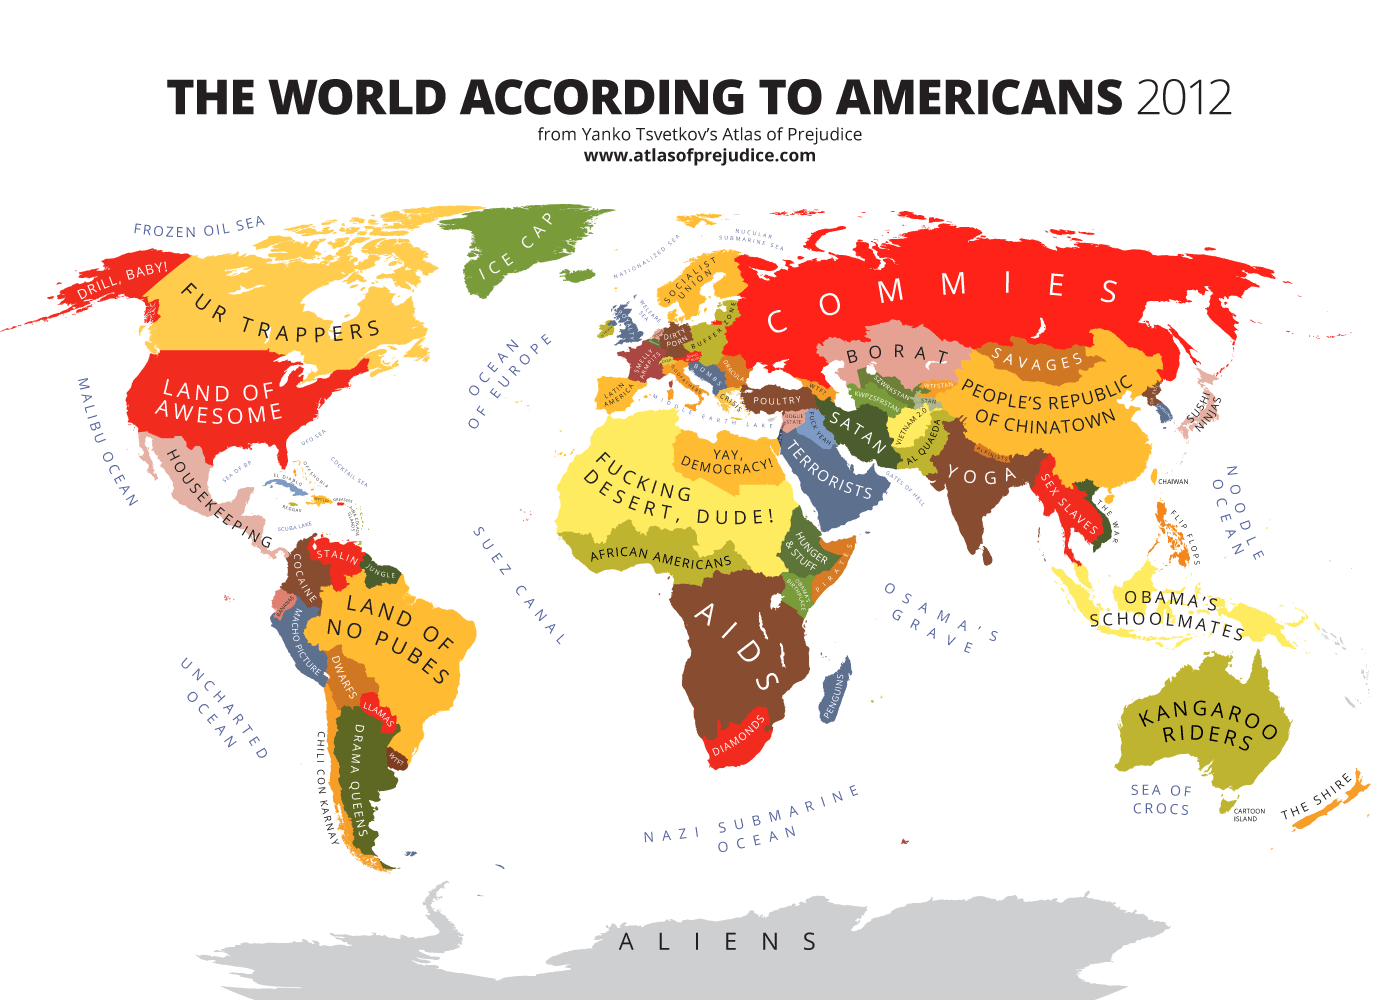 The american world atlas of prejudice gumiabroncs Image collections